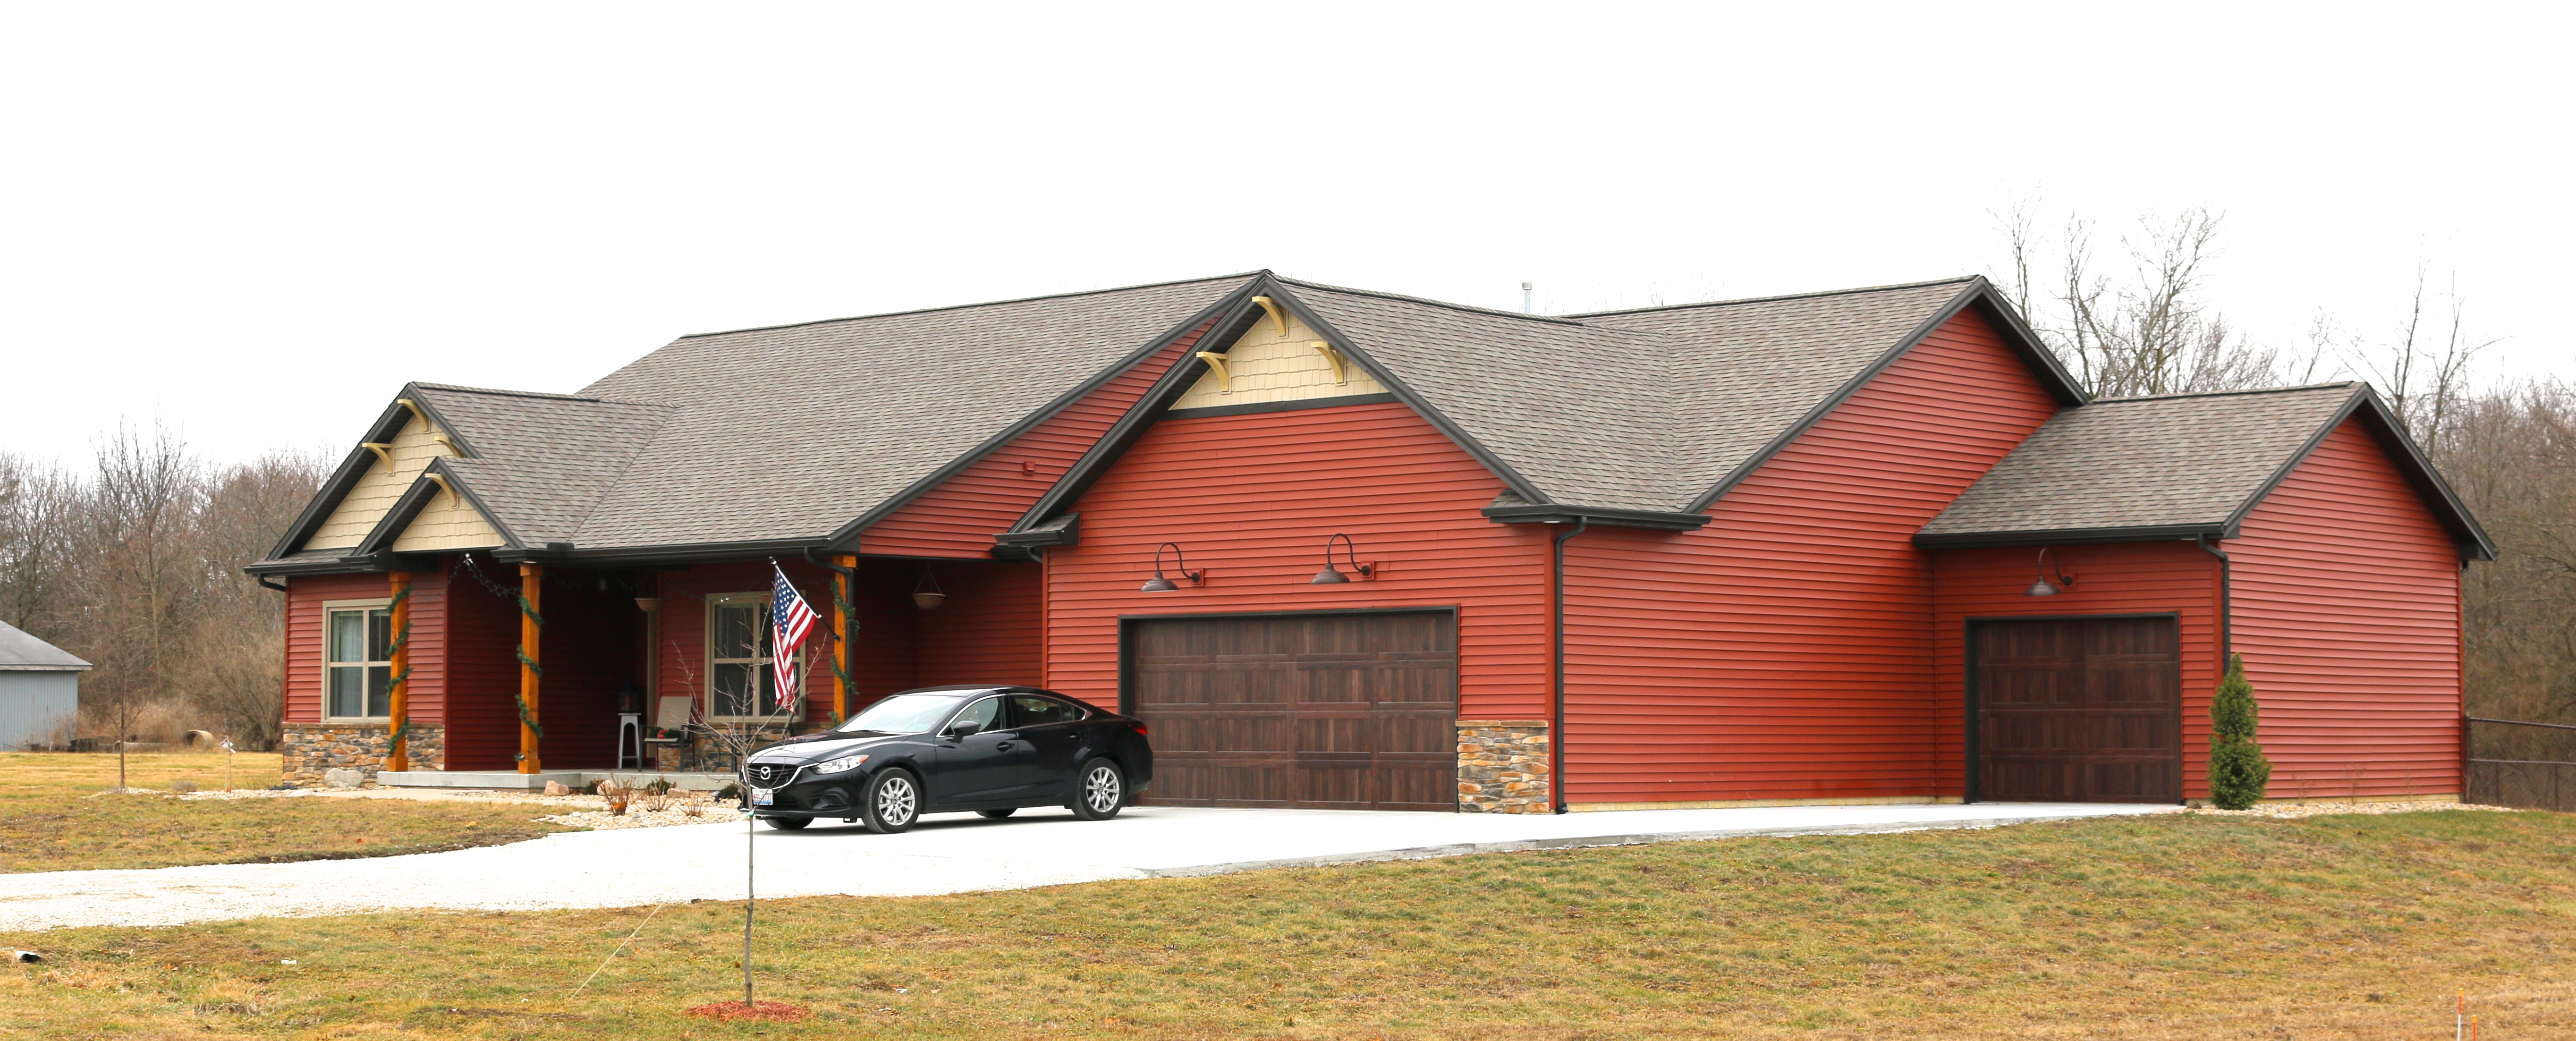 Redwood Red Siding Wicker Tan Shakes And Gable Brackets Weatehred